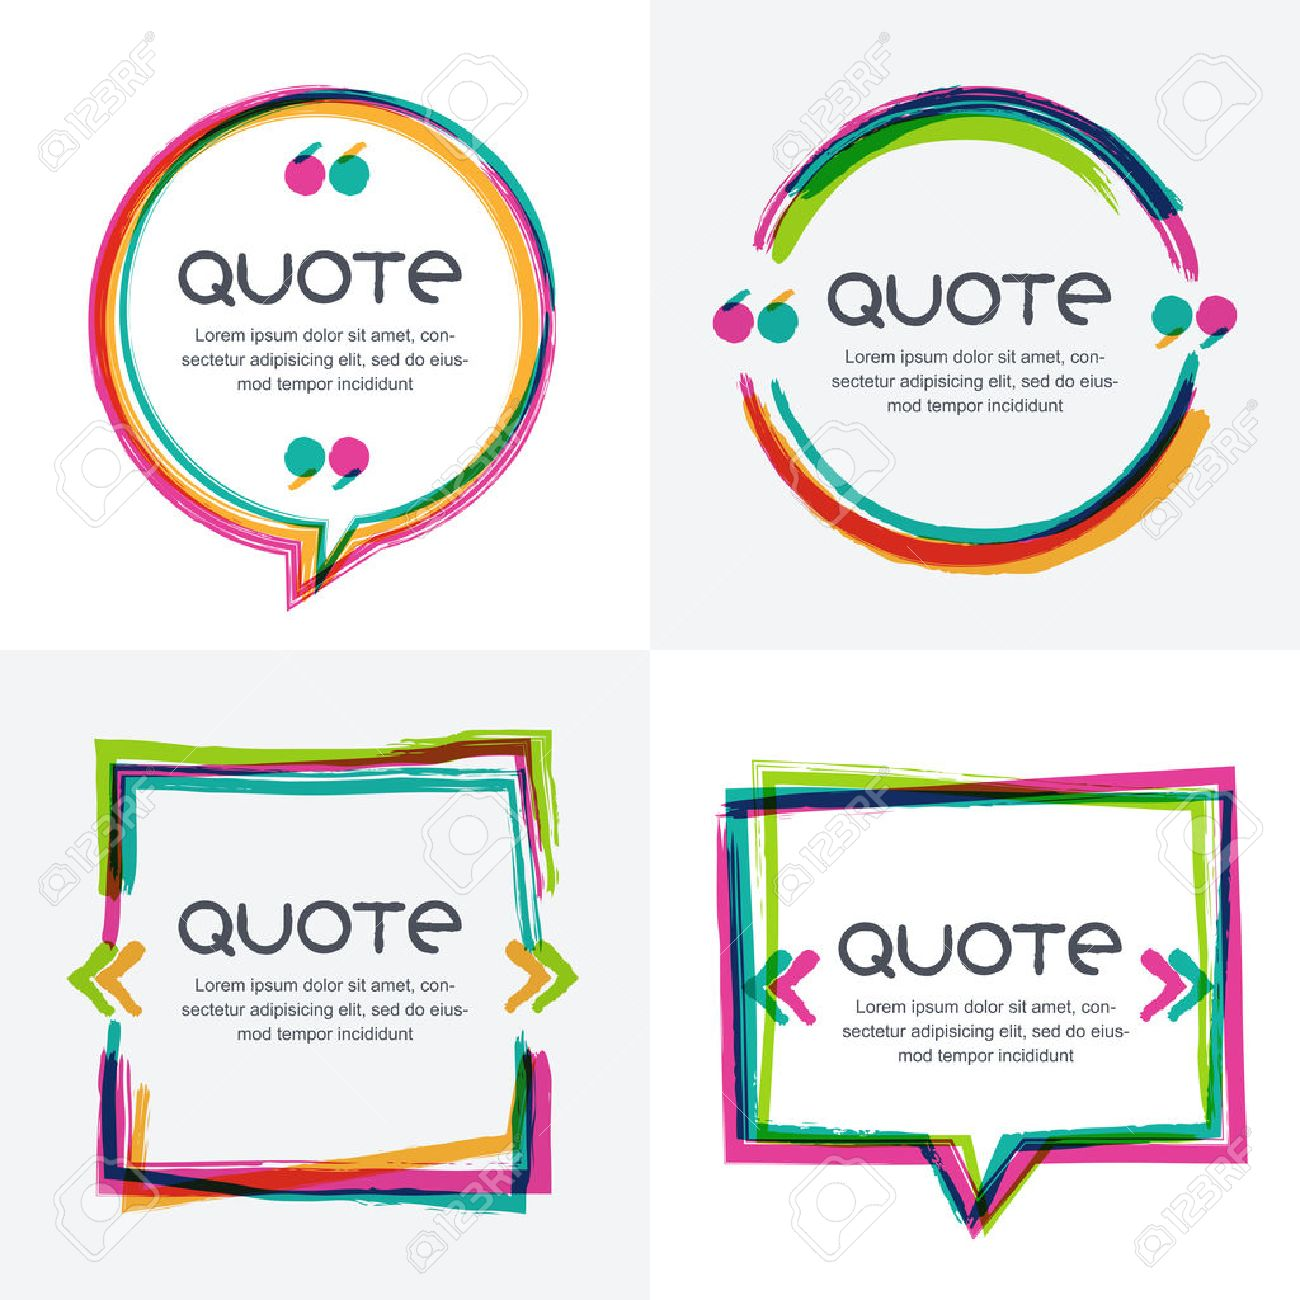 Stock illustration 3d red text quot yes quot stock illustration royalty - Vector Set Of Quote Forms Template Colorful Bright Backgrounds Watercolor Brush Frame Blank